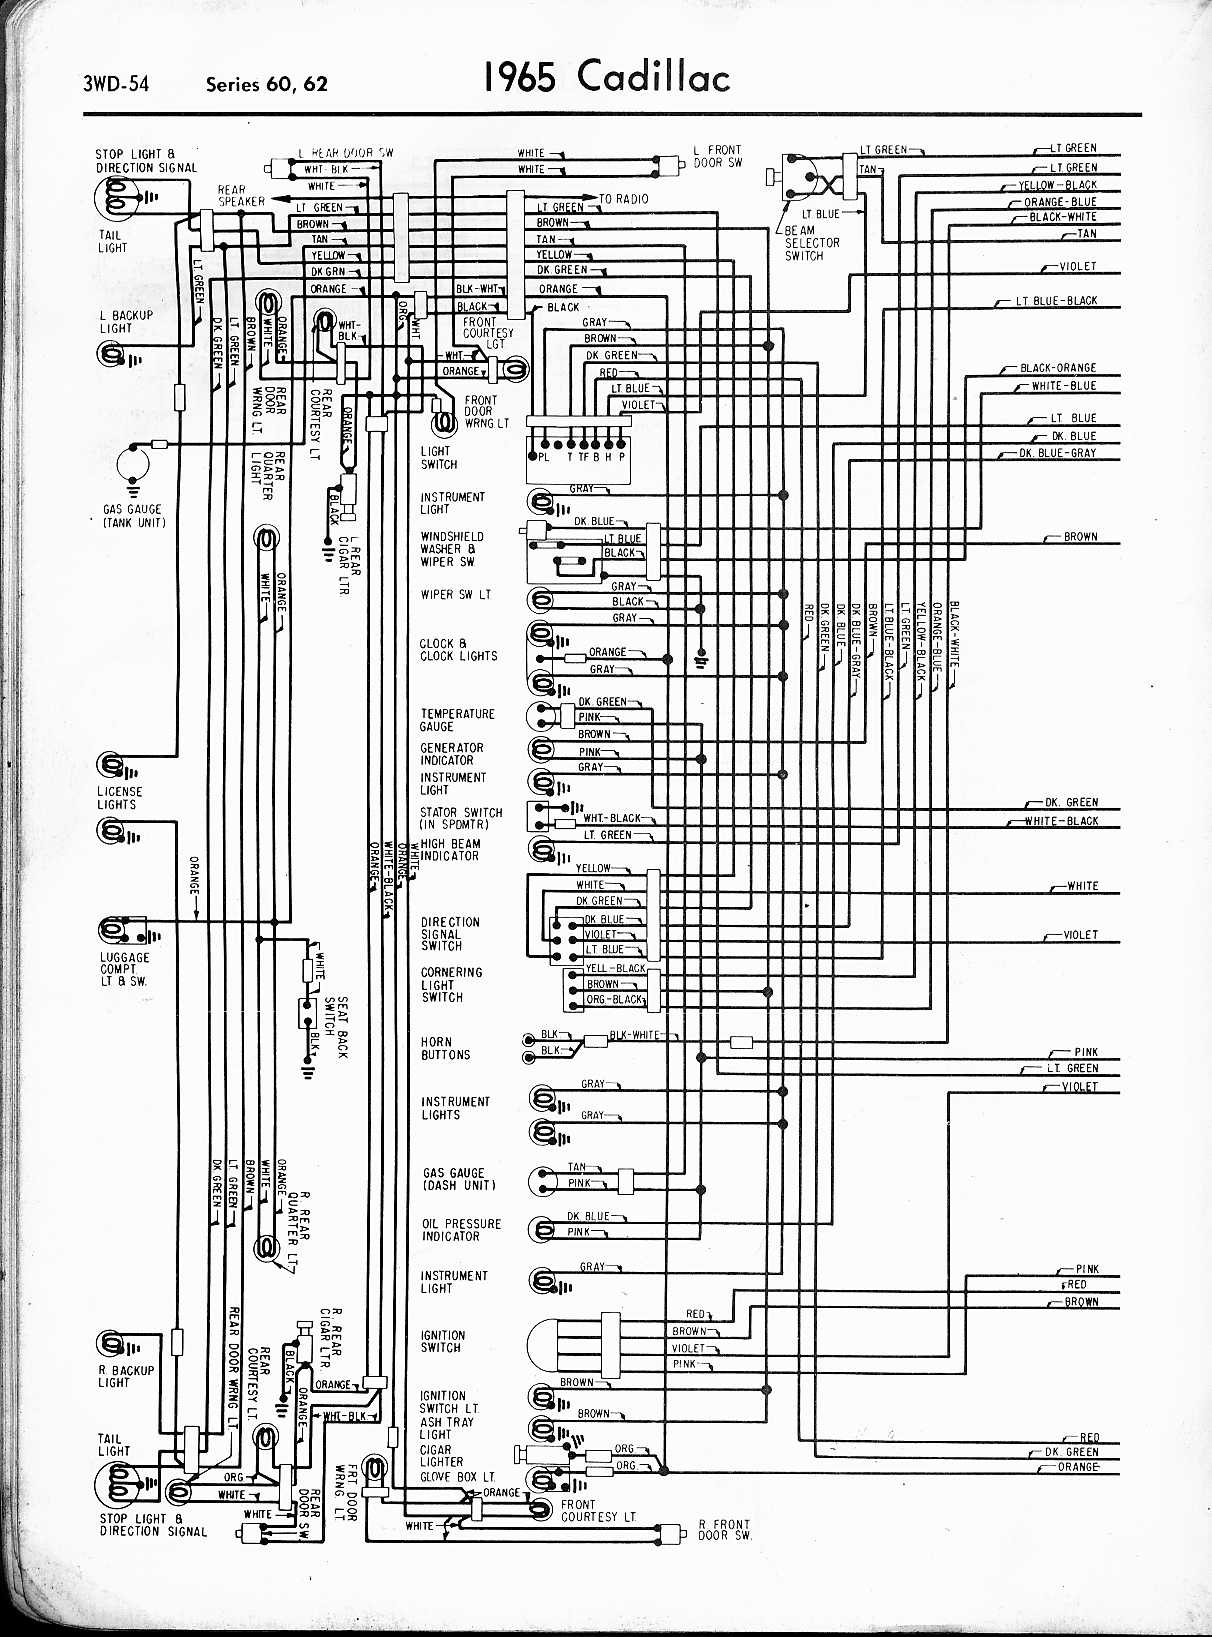 MWireCadi65_3WD 054 cadillac wiring diagrams 1957 1965  at soozxer.org